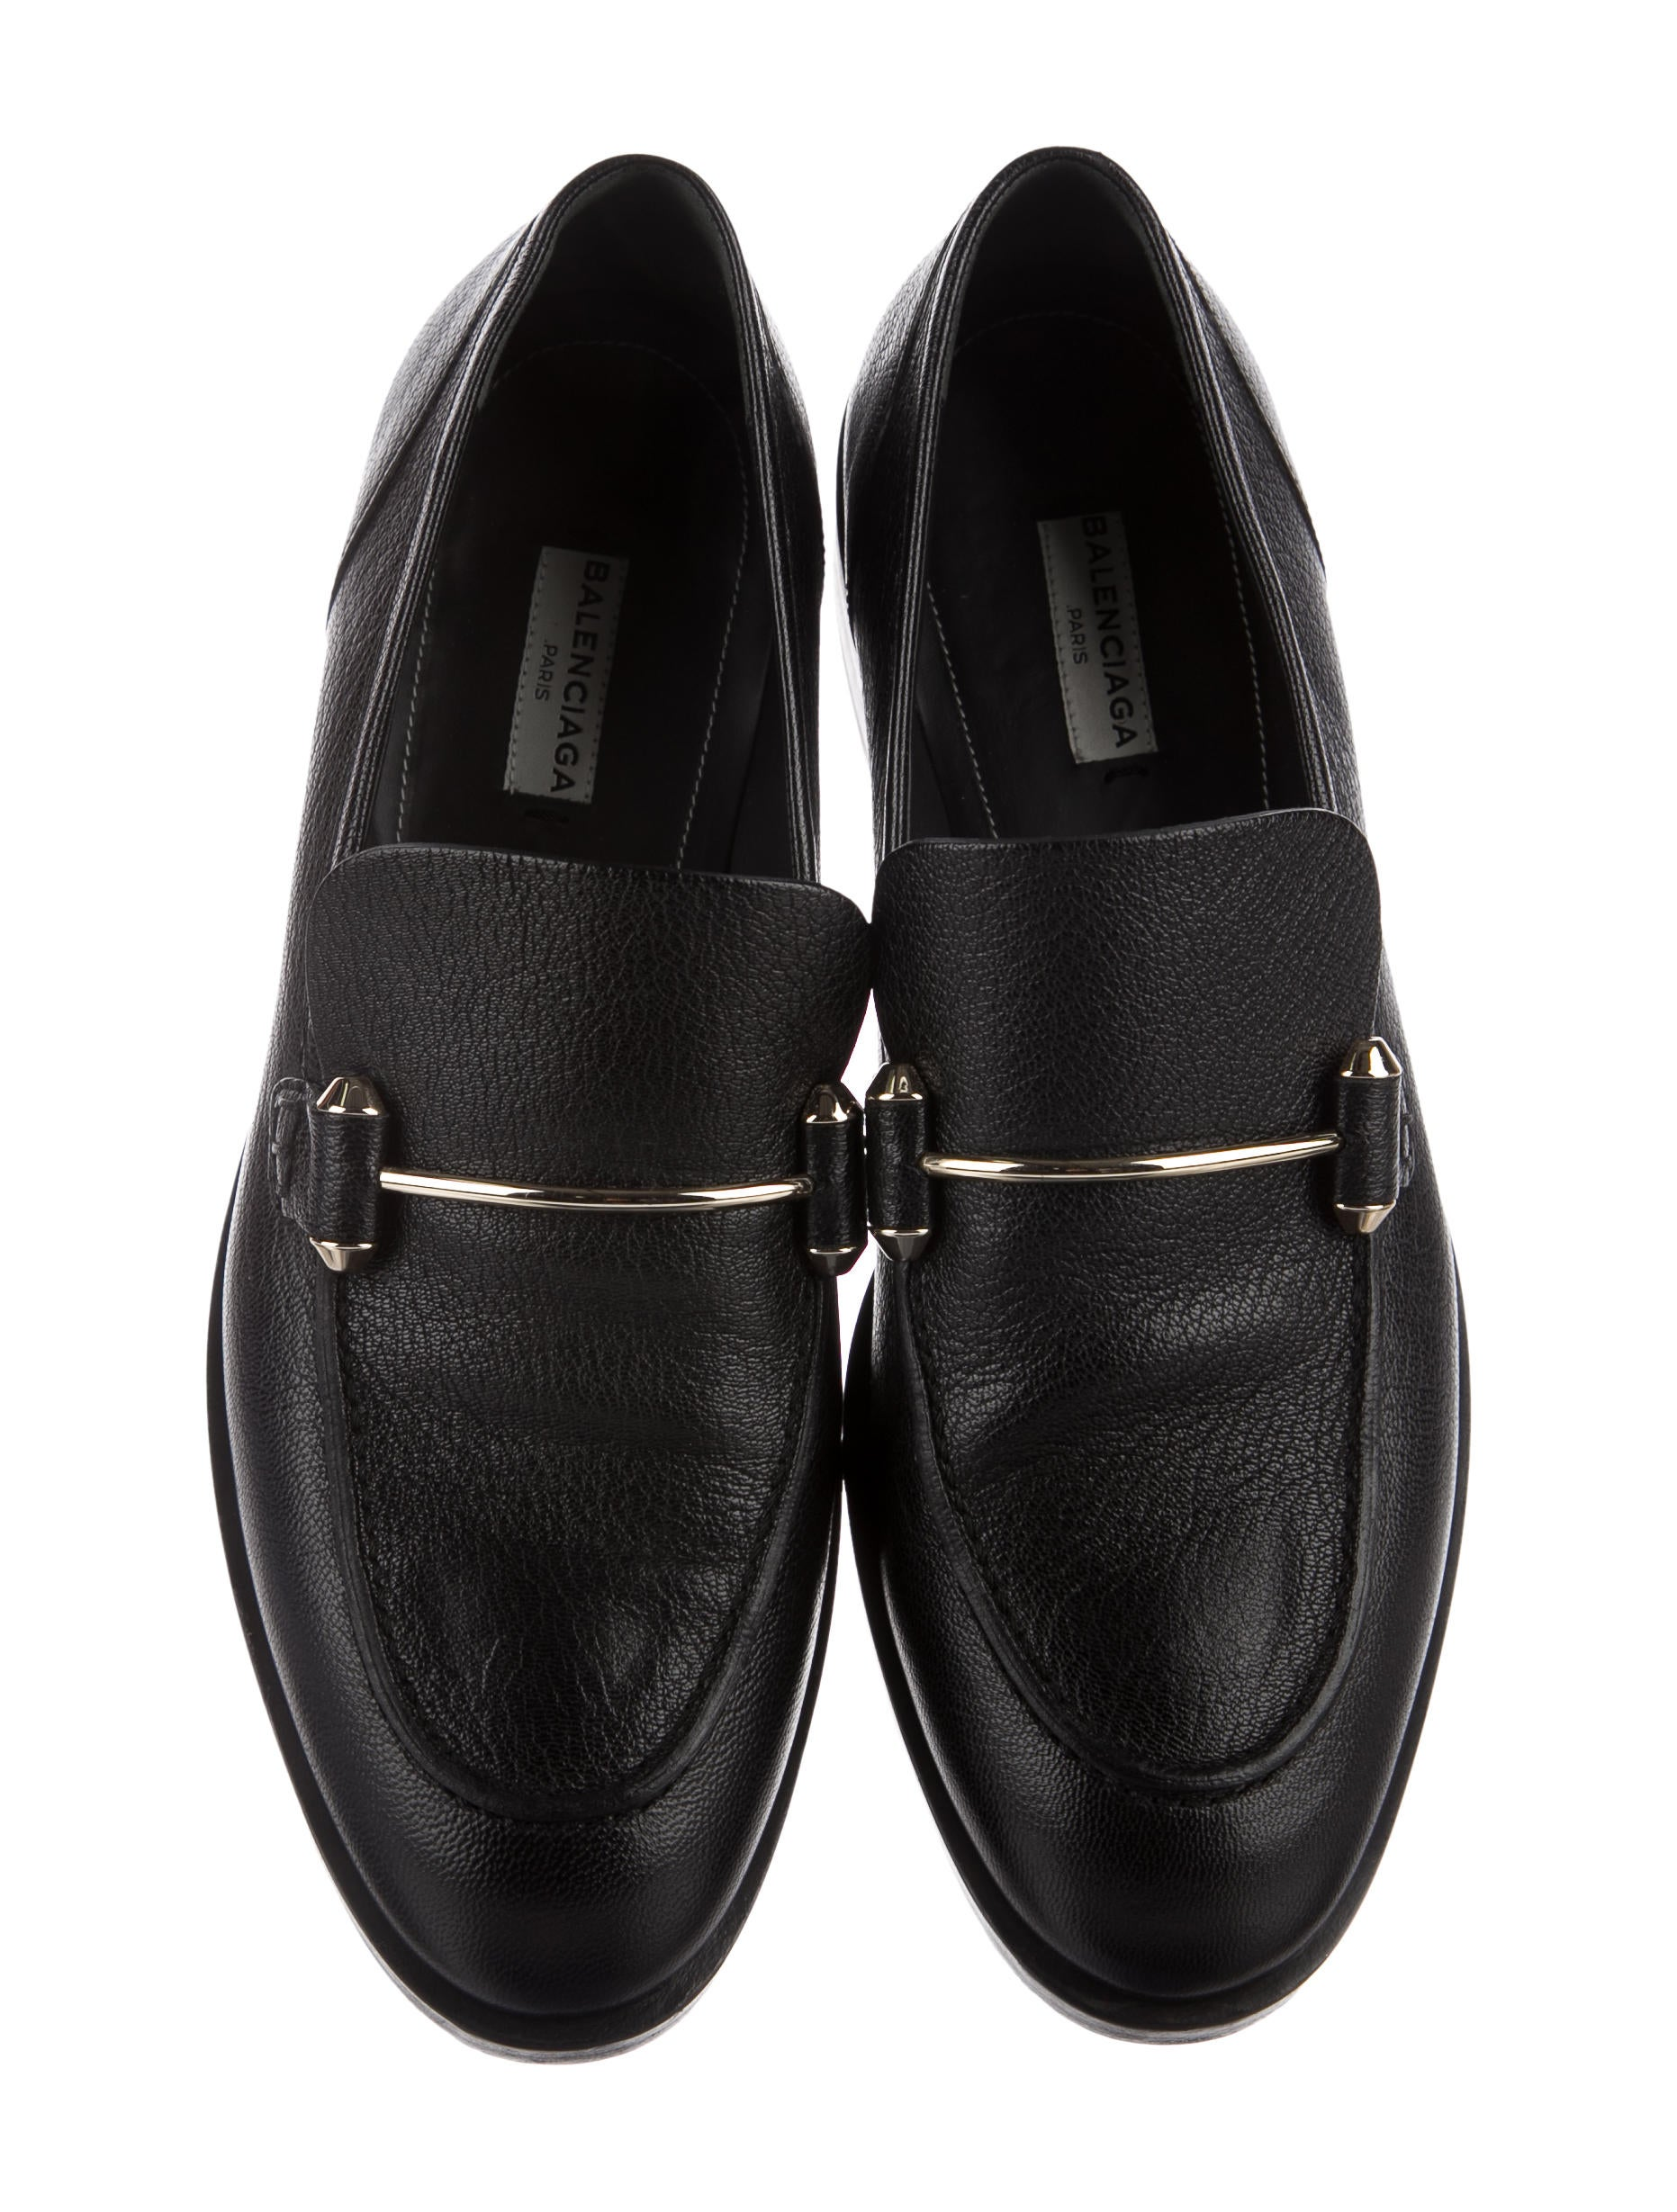 brand new unisex for sale shop offer sale online Balenciaga Round-Toe Leather Loafers many kinds of cheap price with mastercard sale online where to buy niAsJv1iT